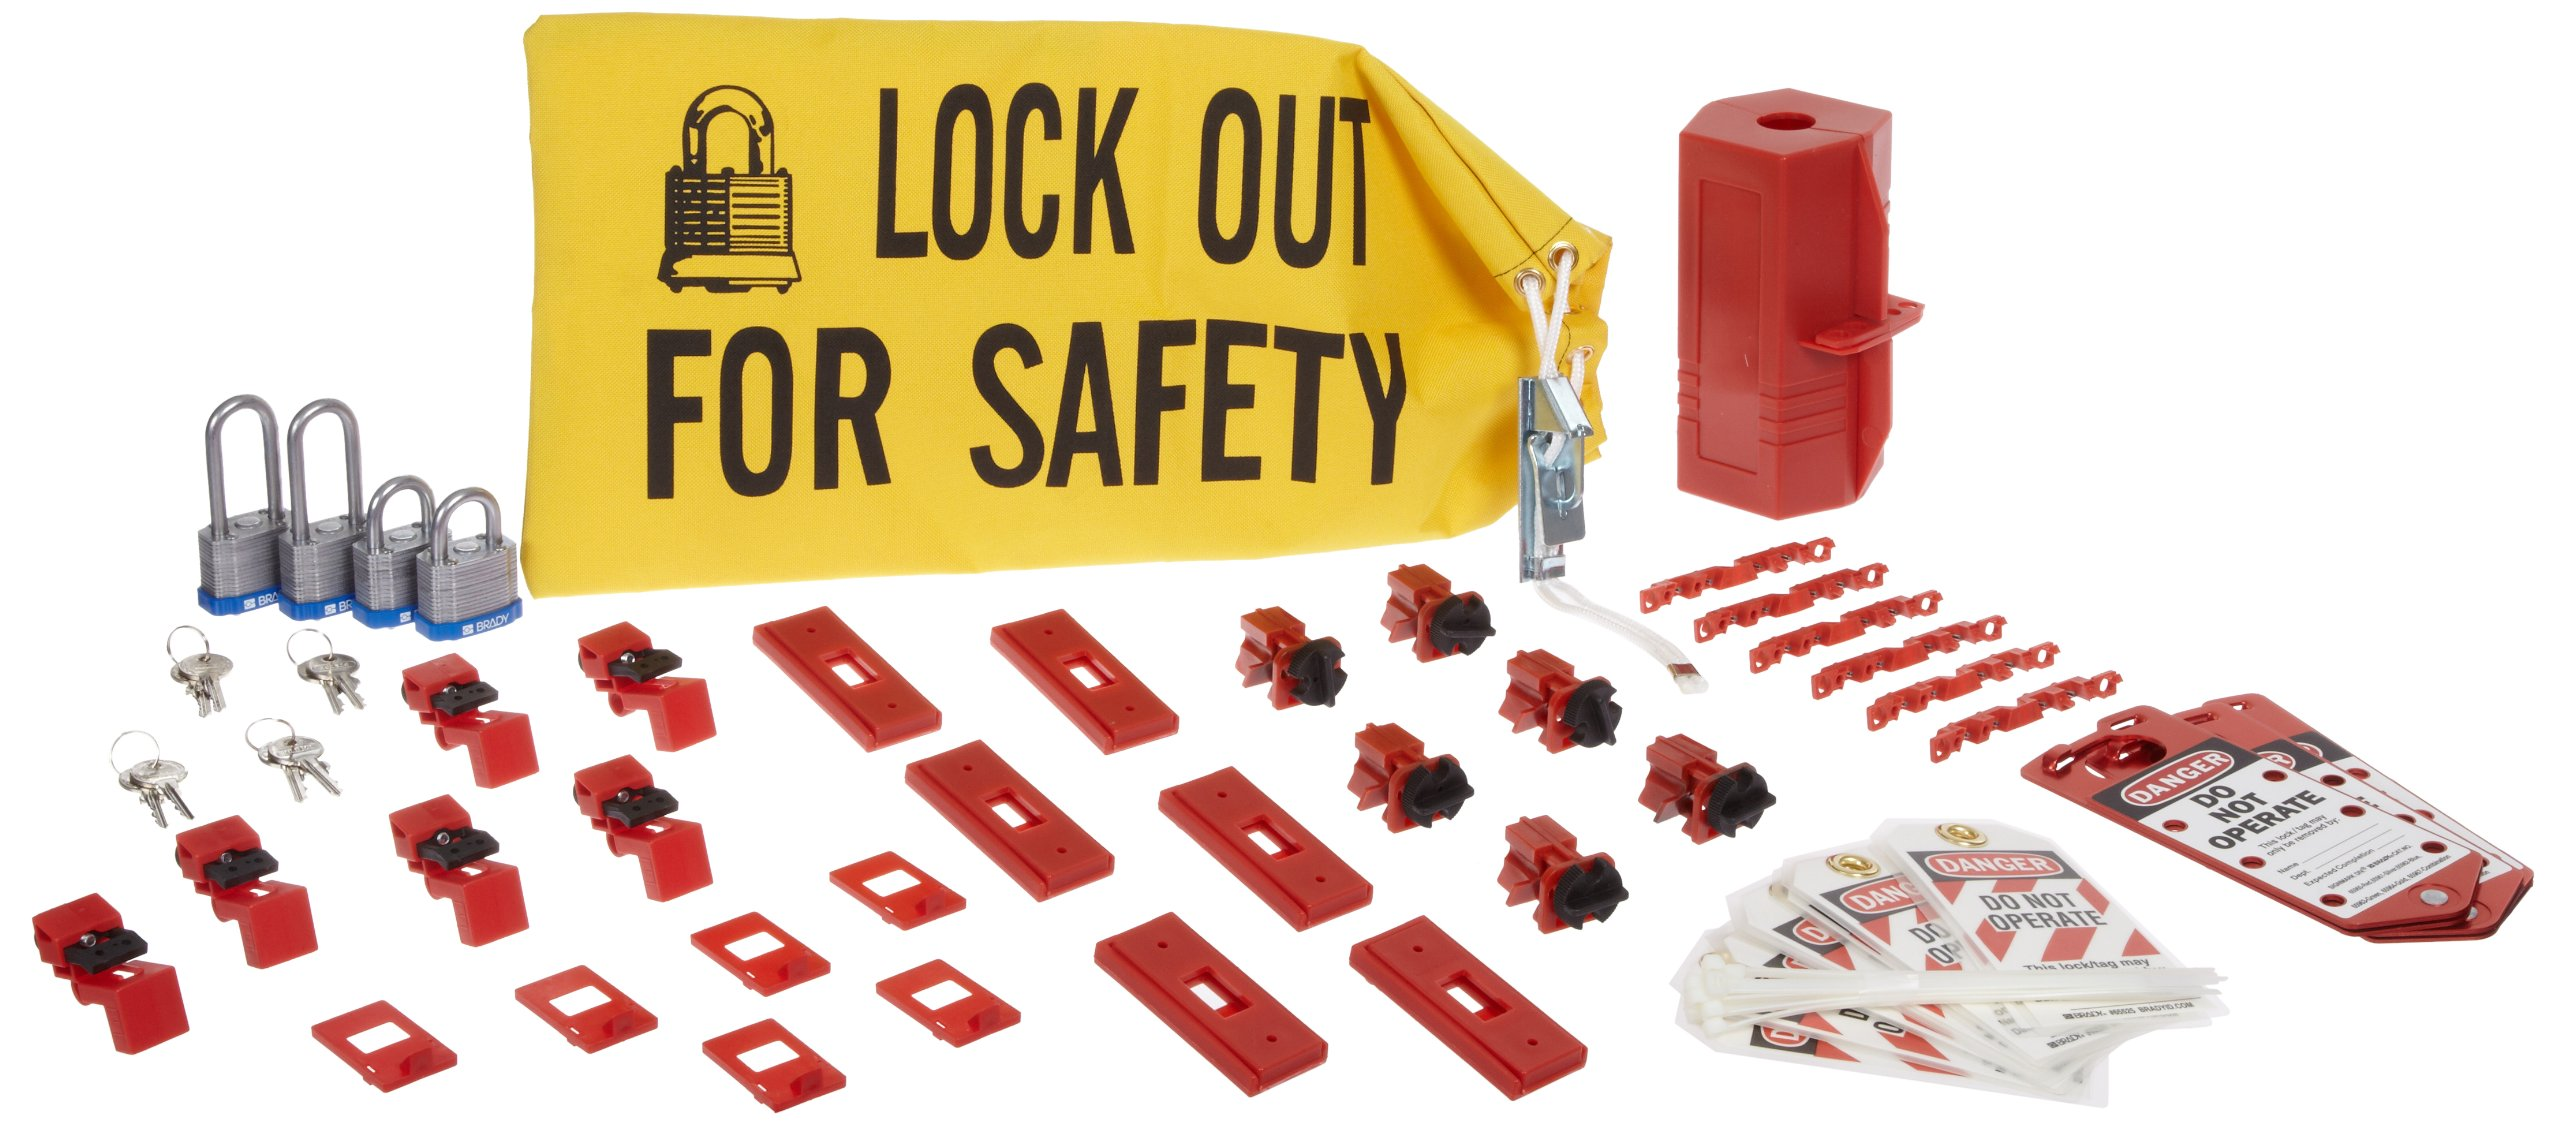 Brady 65777 Electrical Lockout Starter Kit (1 Kit)